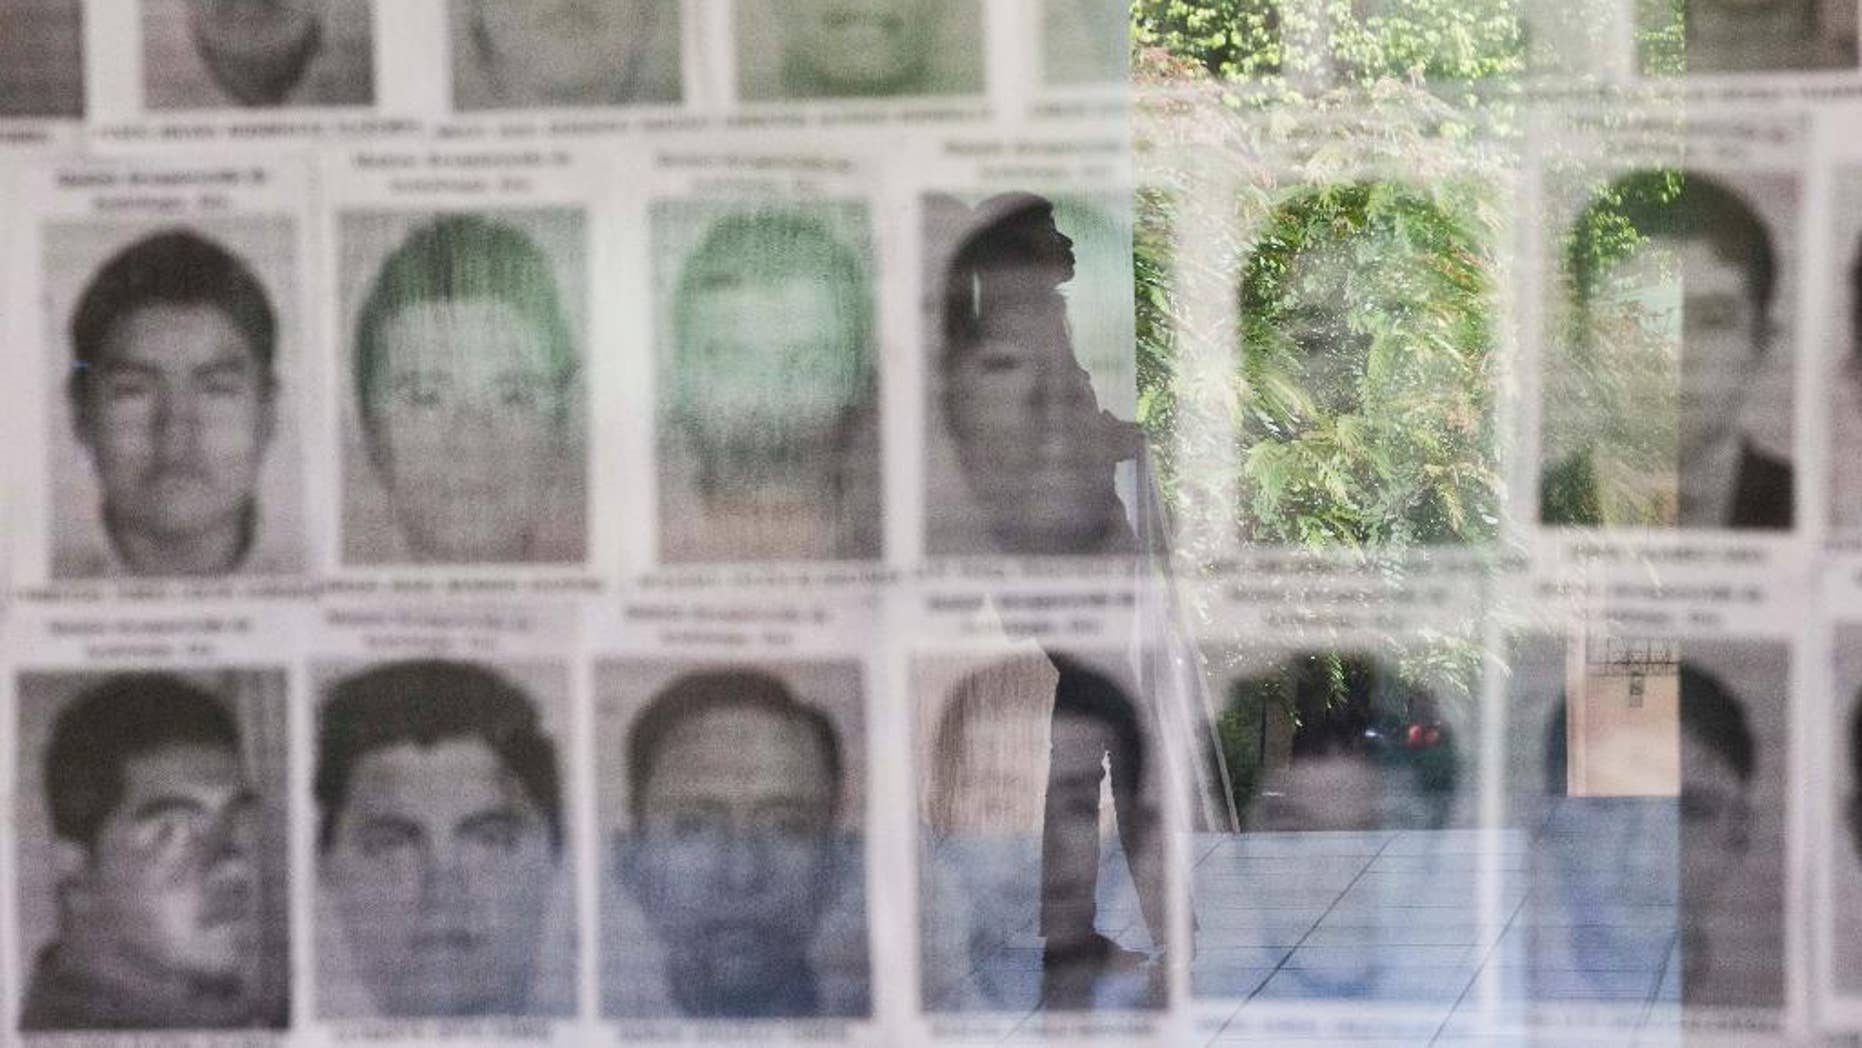 FILE - In this Nov. 18, 2014 file photo, a university student is reflected in a glass display case showing the photos of 43 missing students from the Rural Normal School of Ayotzinapa, Mexico, at the Central American University, UCA, in Managua, Nicaragua. Mexican authorities announced they detained on Friday, Oct. 21, 2016 the former police chief of Iguala where the students disappeared on Sept. 26, 2014. The students were taken by police and have not been heard from since. (AP Photo/Esteban Felix, File)